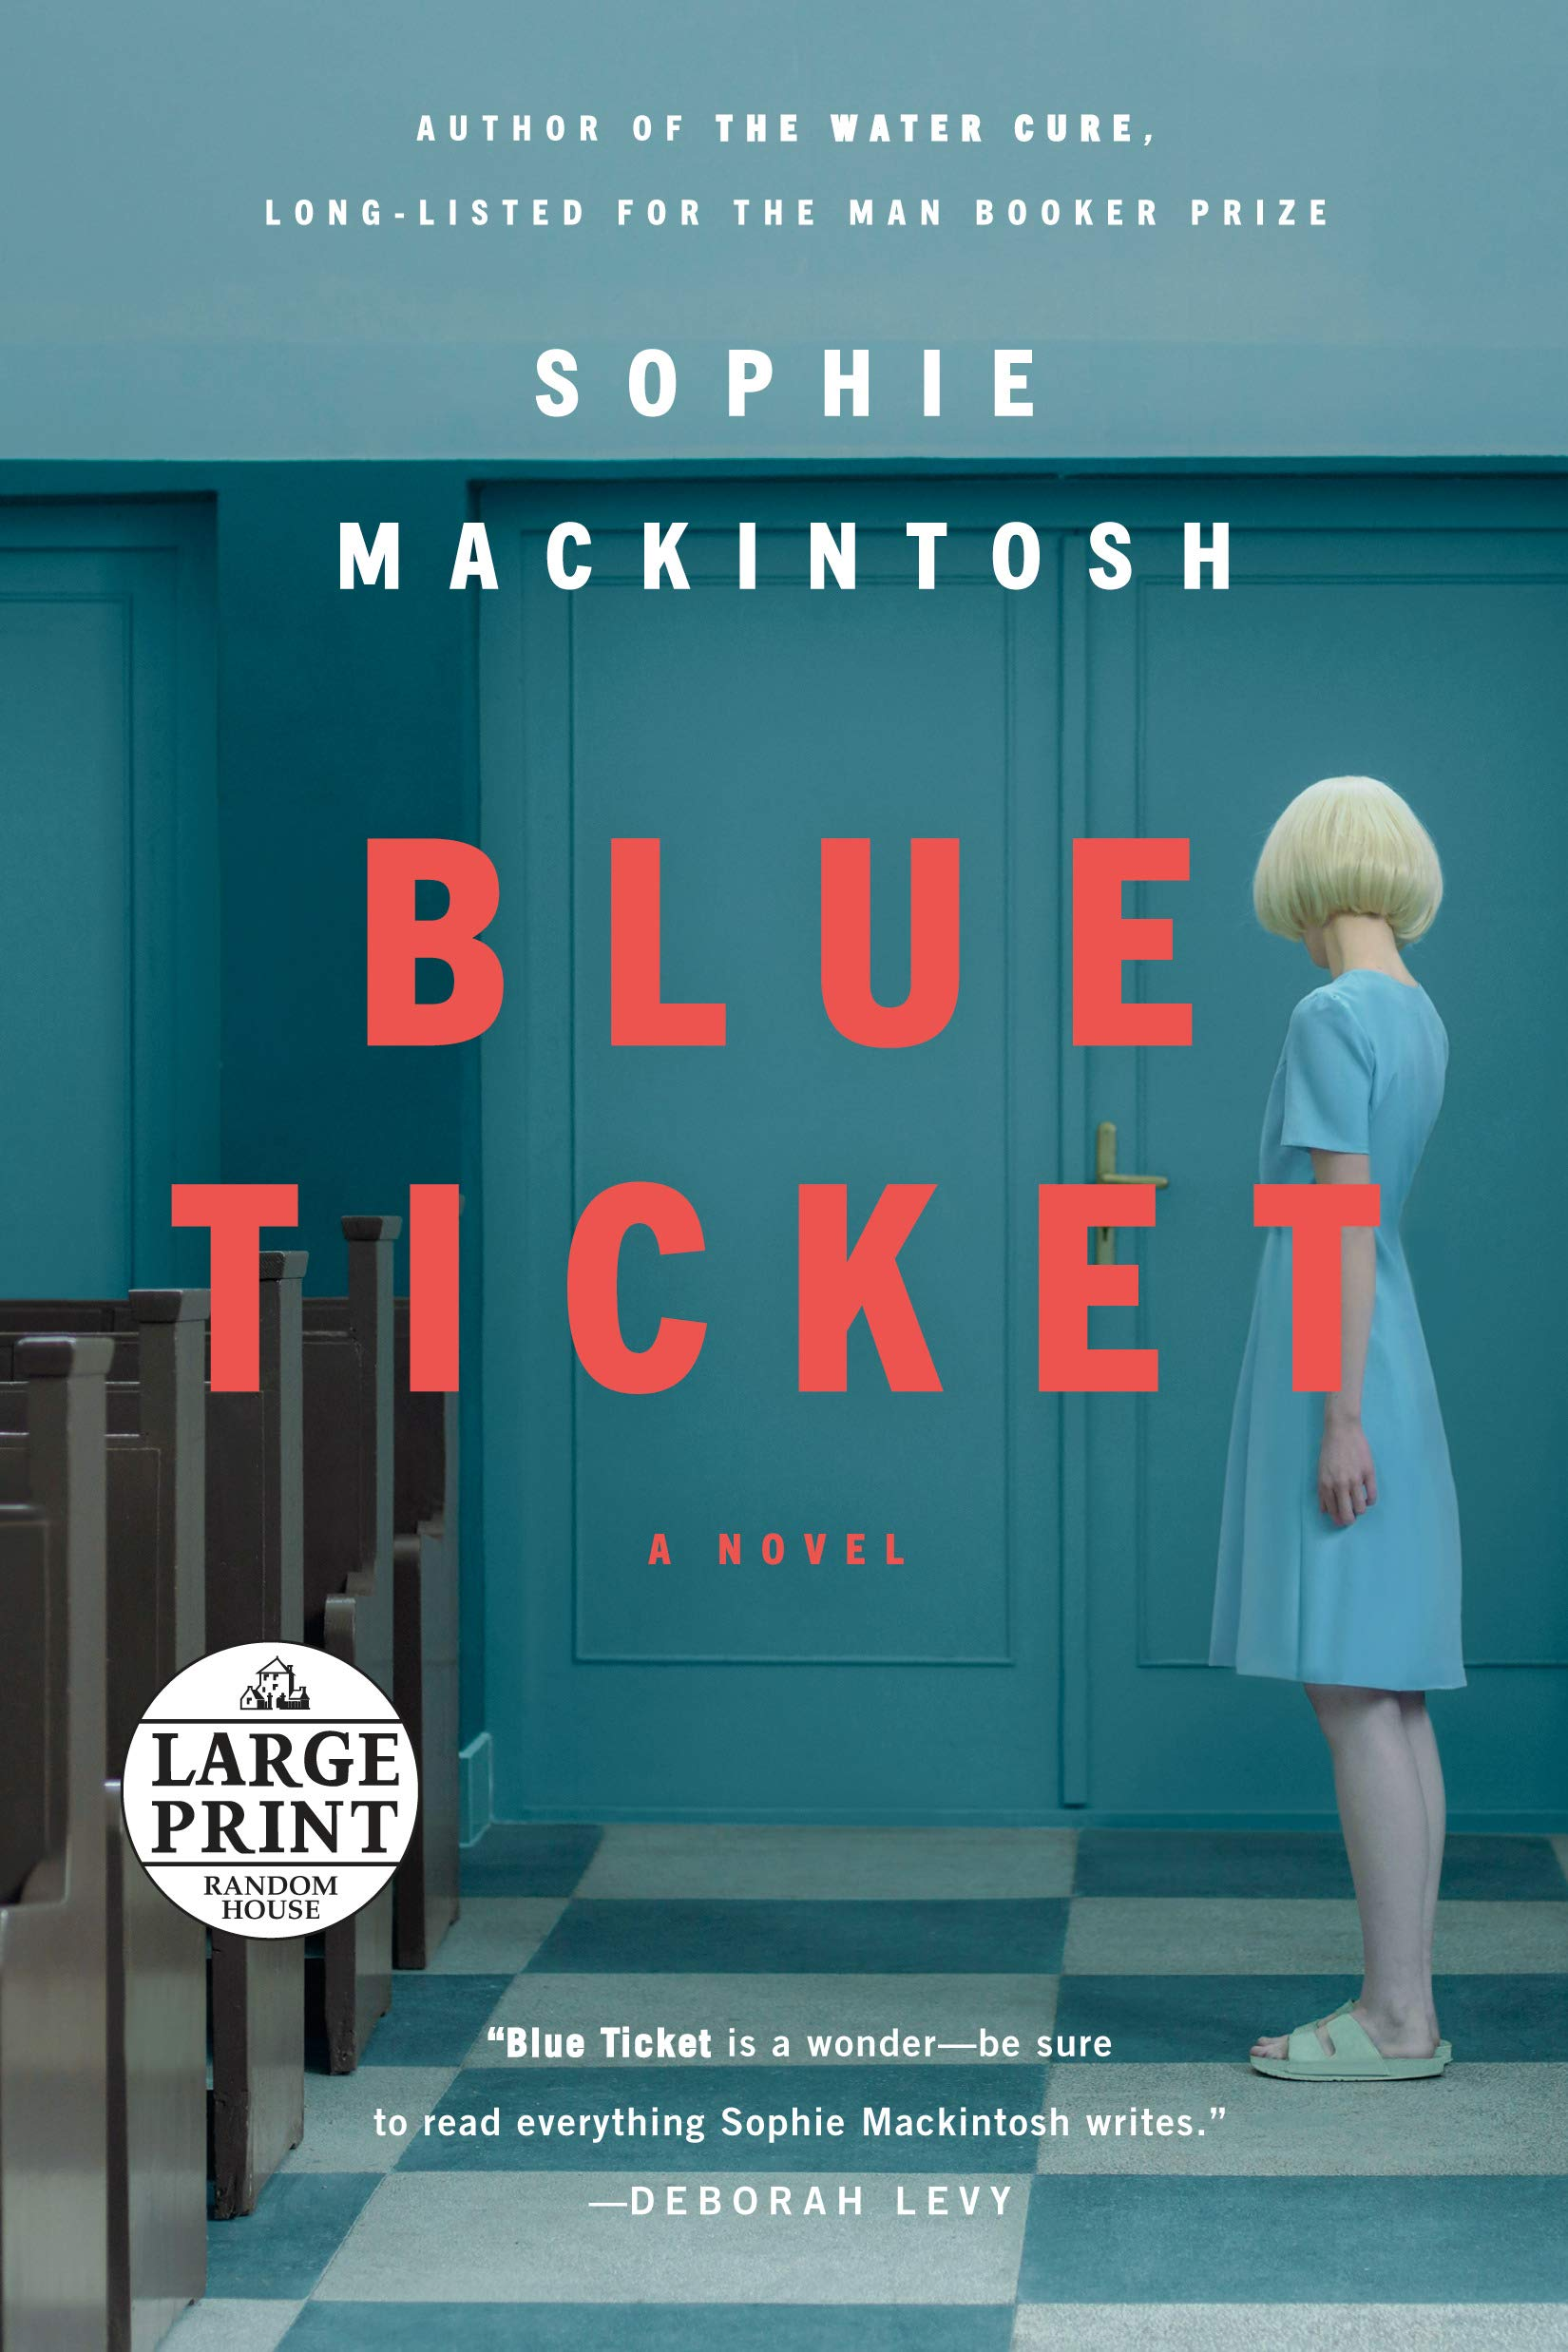 Blue Ticket: Amazon.co.uk: Mackintosh, Sophie: 9780593214800: Books